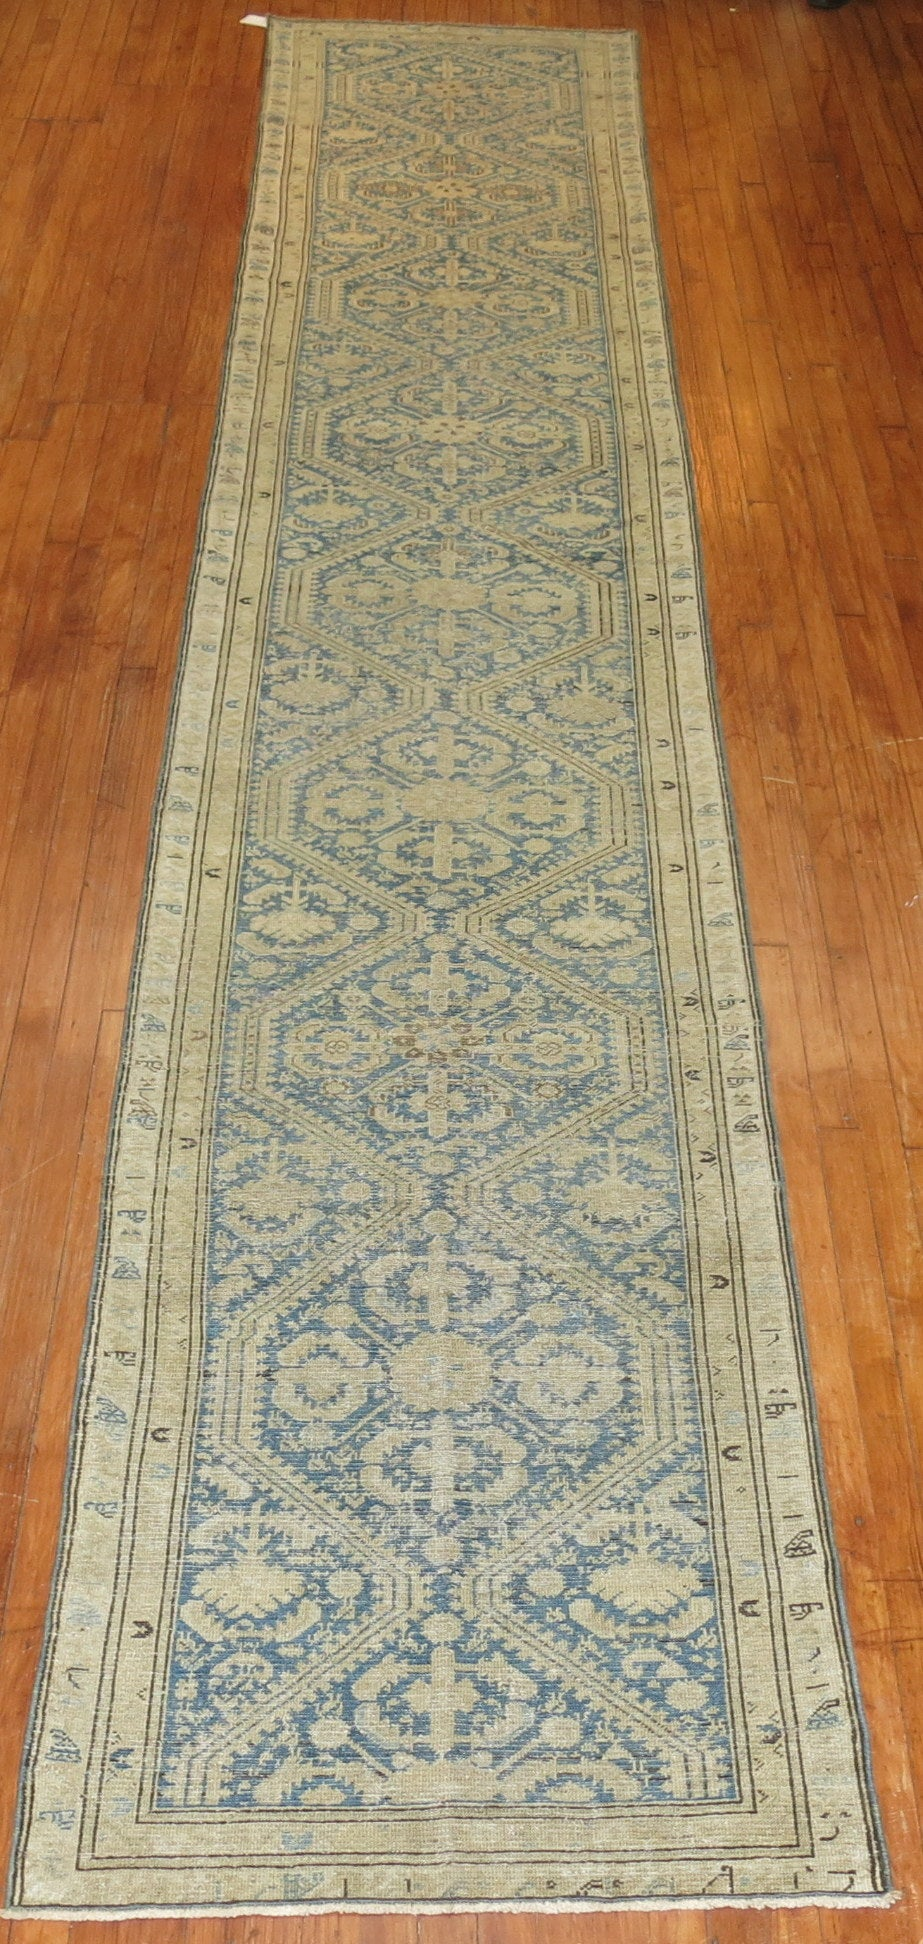 An early 20th century Persian Malayer runner in blues and gold.